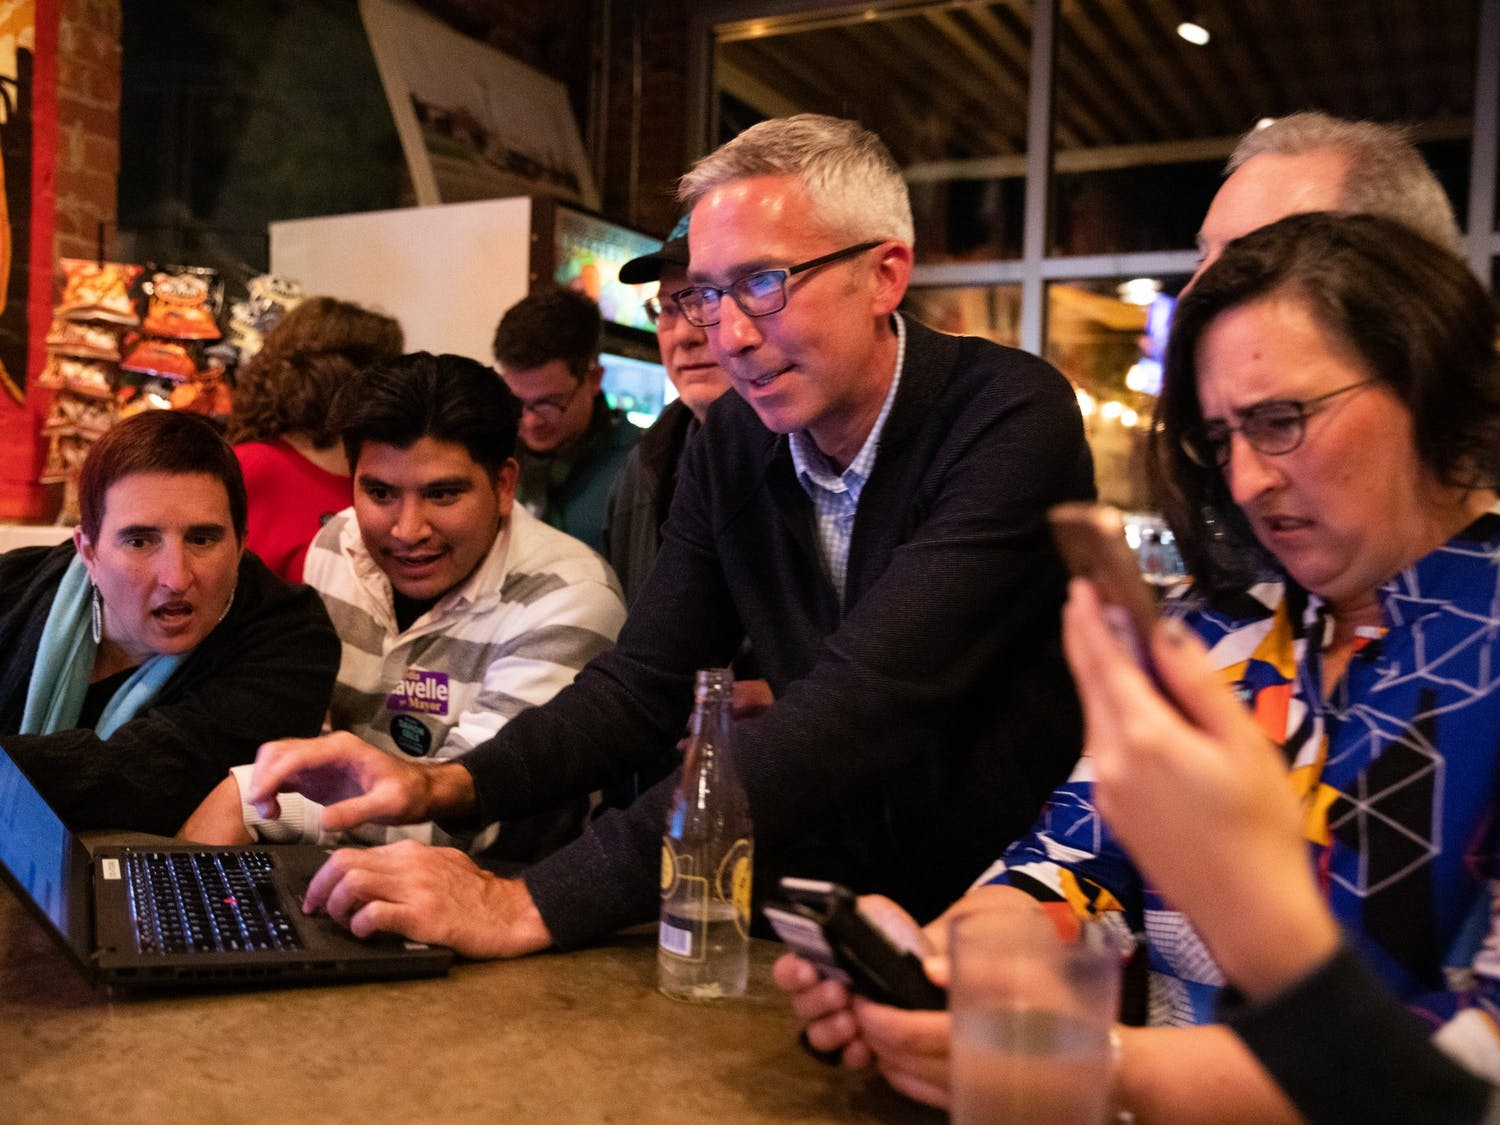 (From left) Allison De Marco, 45, Eliazar Posada, 27, alderman candidate Damon Seils and Molly De Marco, 45, watch local election results during an election party organized by Seils' campaign at Steel String Brewery in Carrboro on Tuesday, Nov. 5, 2019.